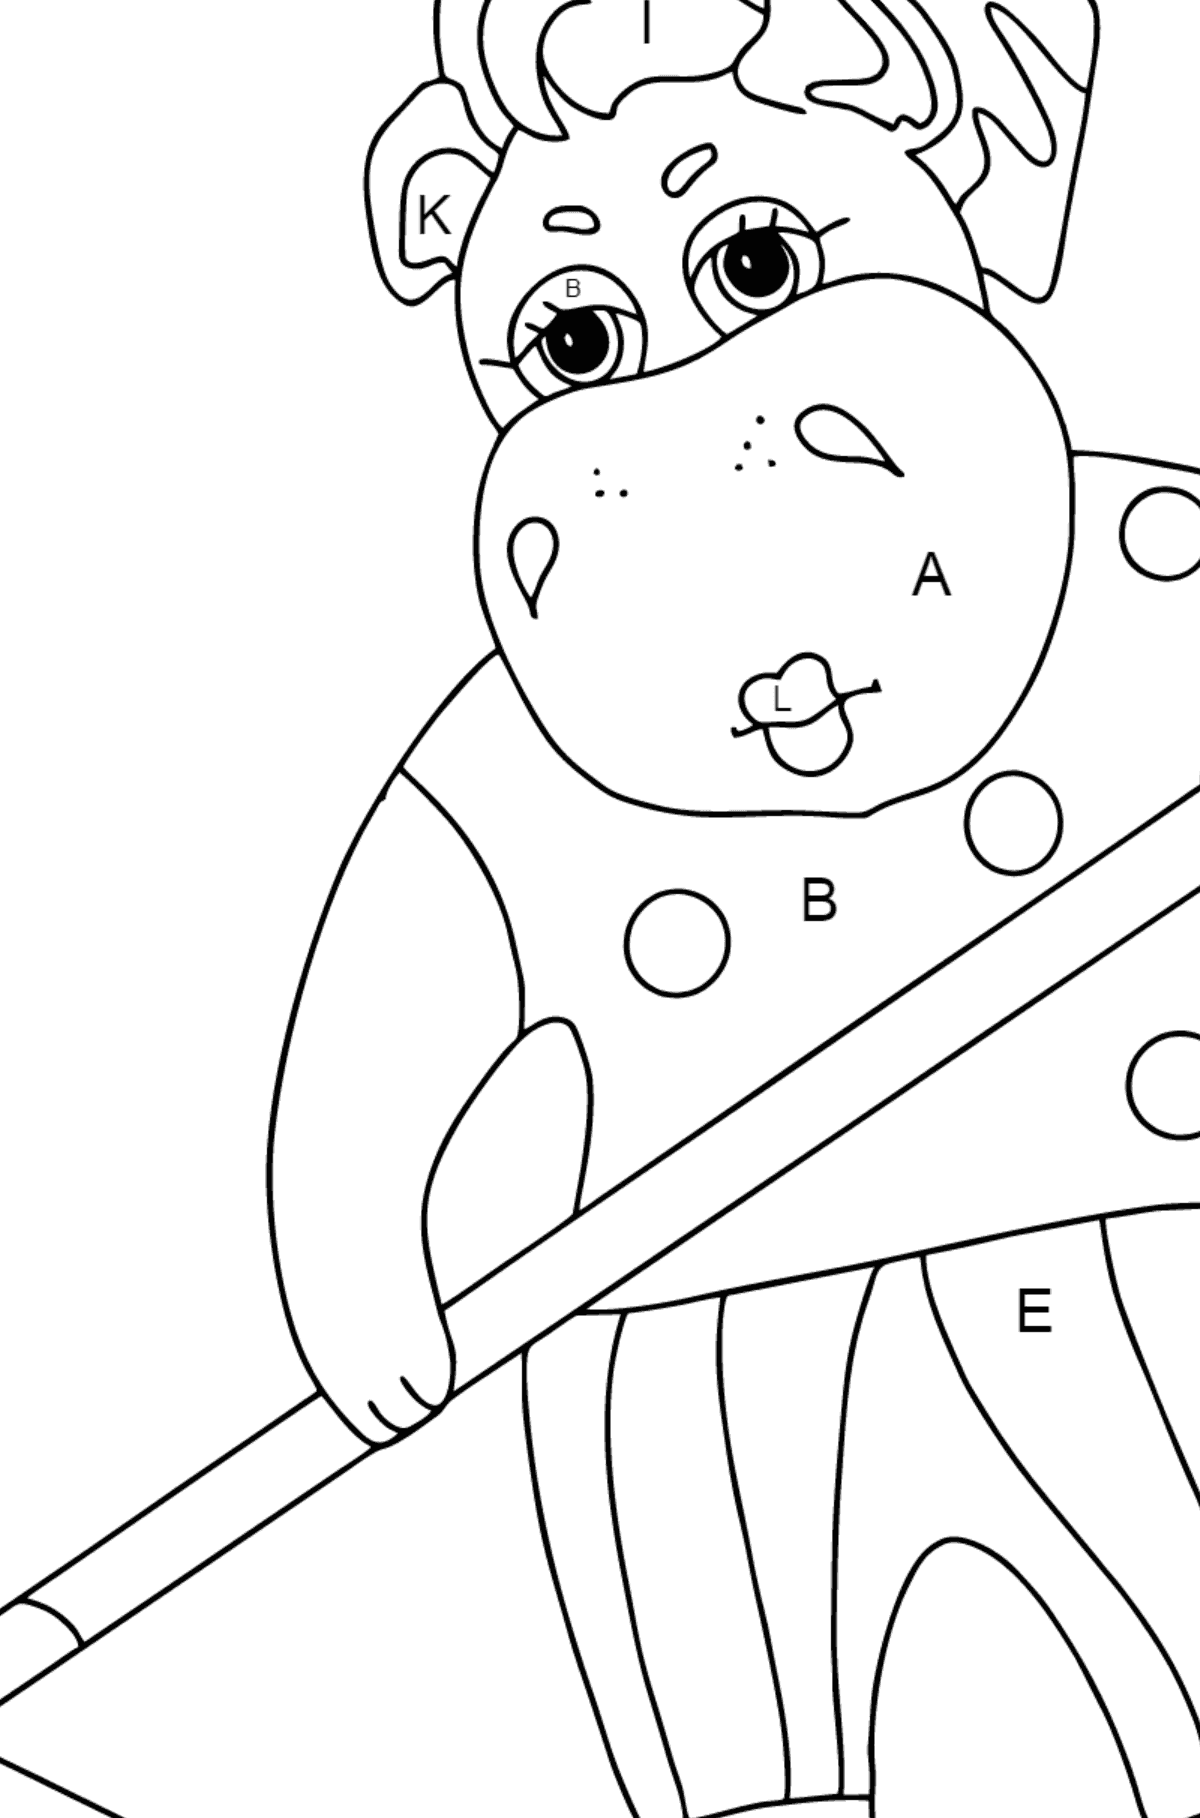 Coloring Page - A Hippo is Collecting Autumn Leaves for Children  - Color by Letters